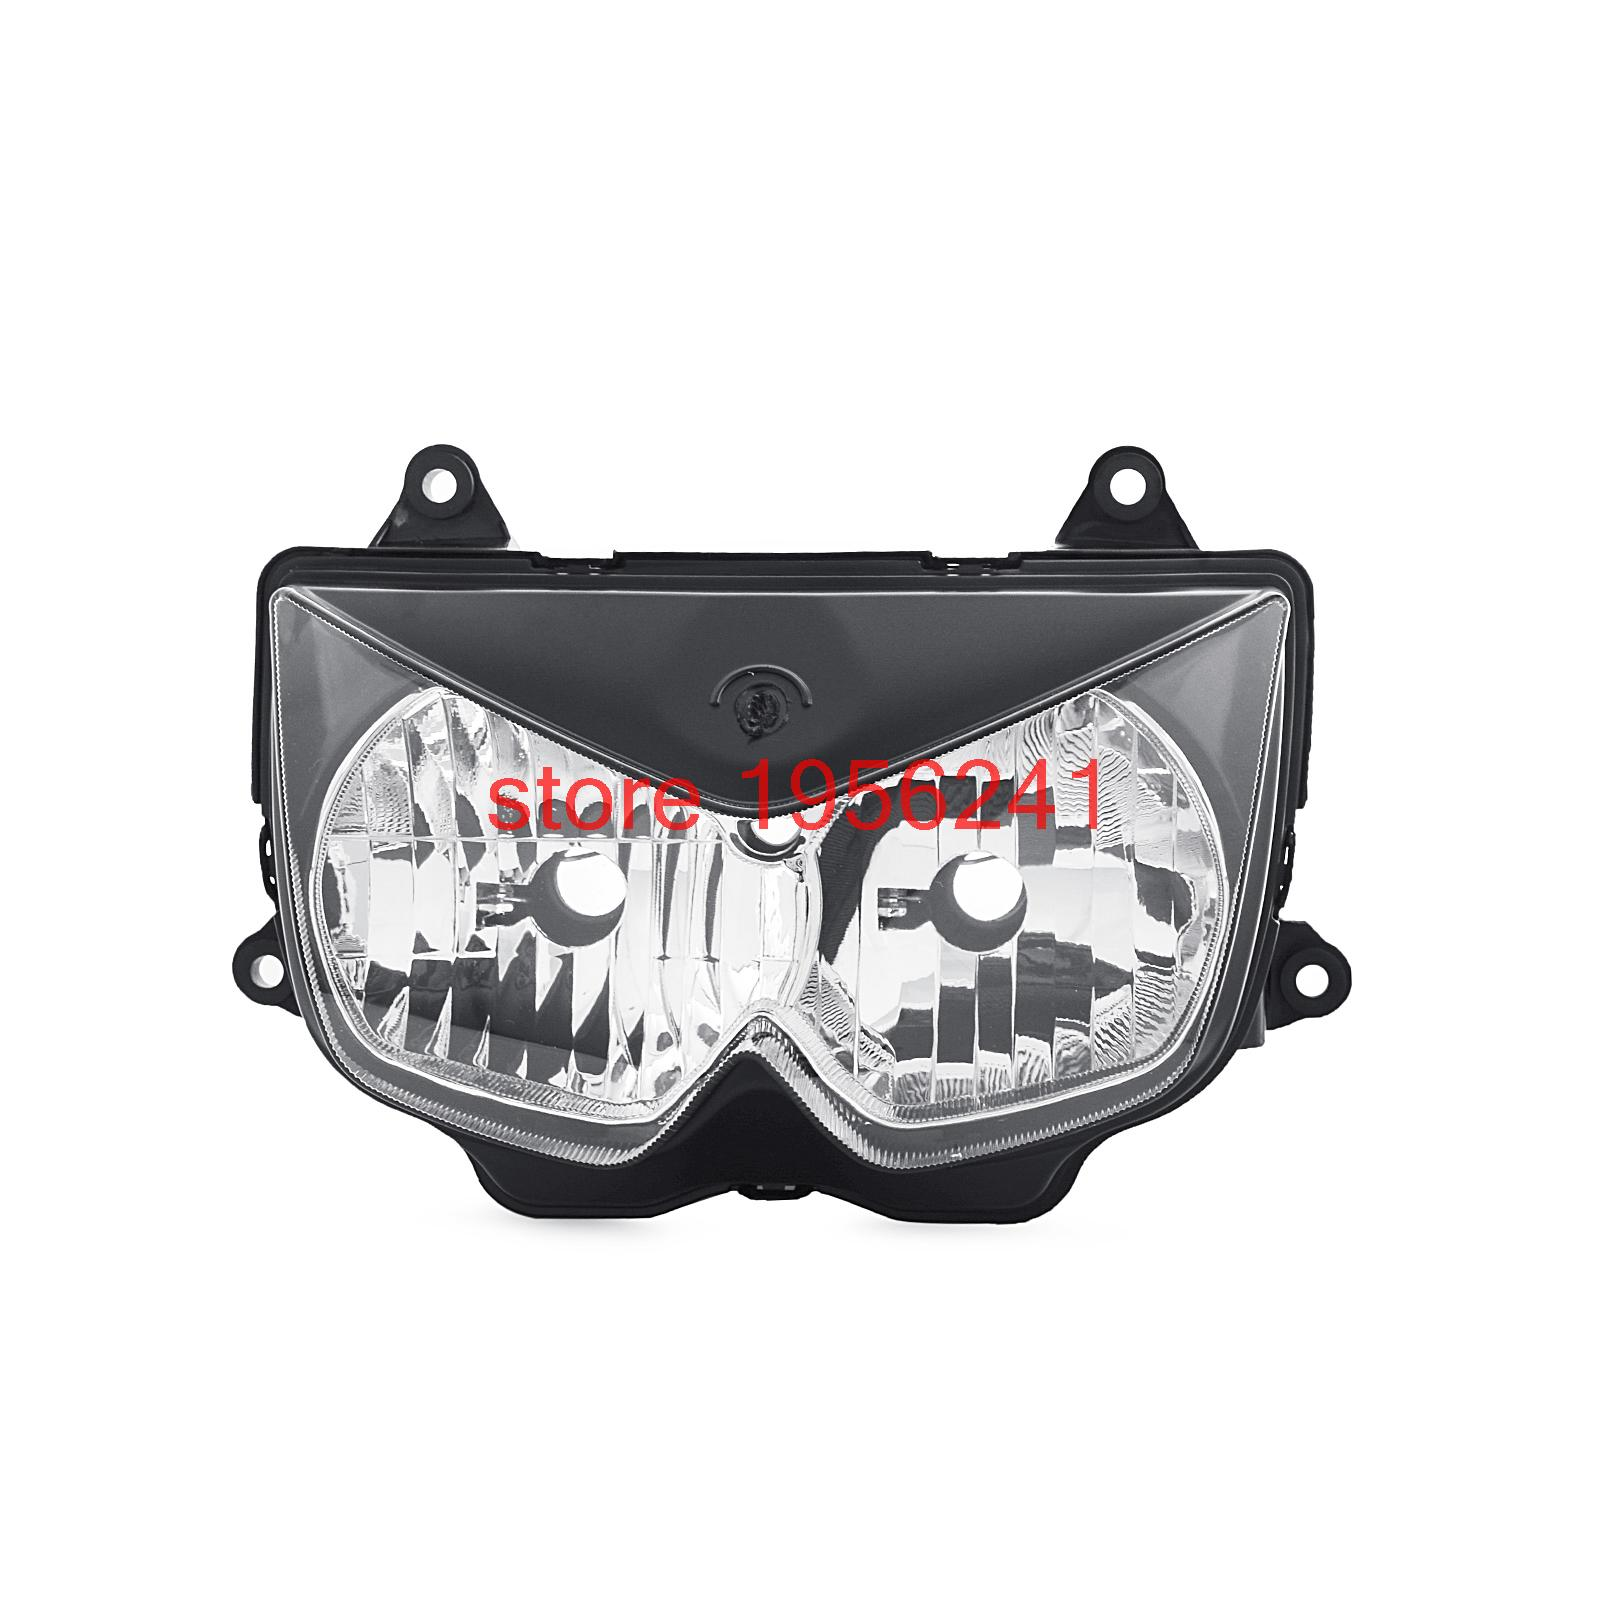 Motorcycle ABS Plastic Replacement Headlamp Headlight For Kawasaki Z1000 2003-2006 Ninja Z750 2004-2006 Ninja 250R 2008-2012 фреза johnson blade knife